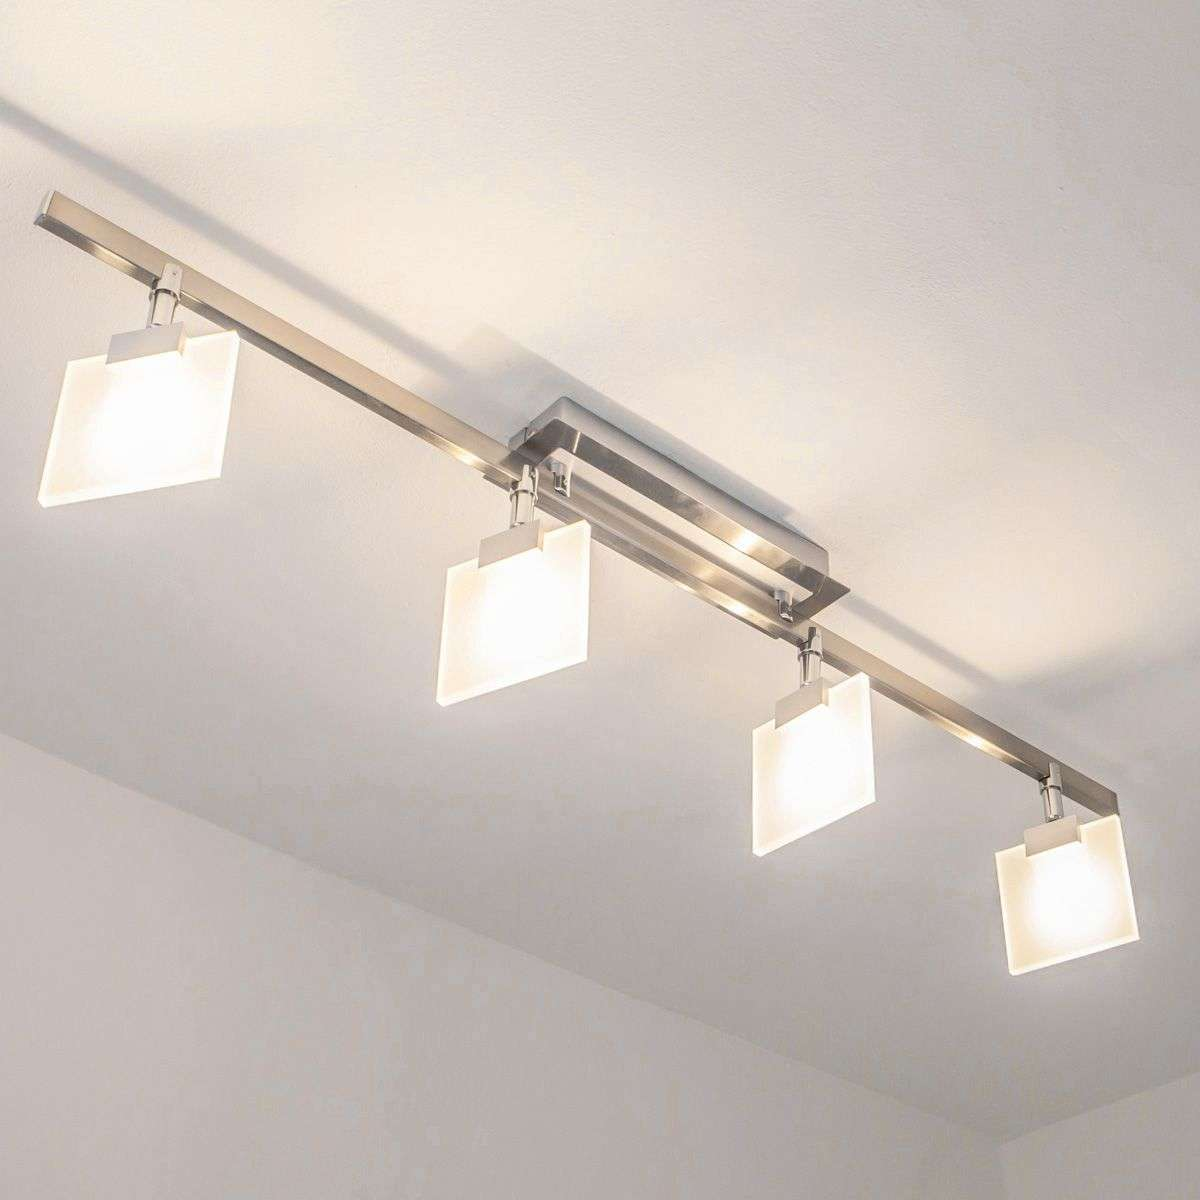 Livius kitchen ceiling light with COB LEDs & Livius kitchen ceiling light with COB LEDs | Lights.co.uk